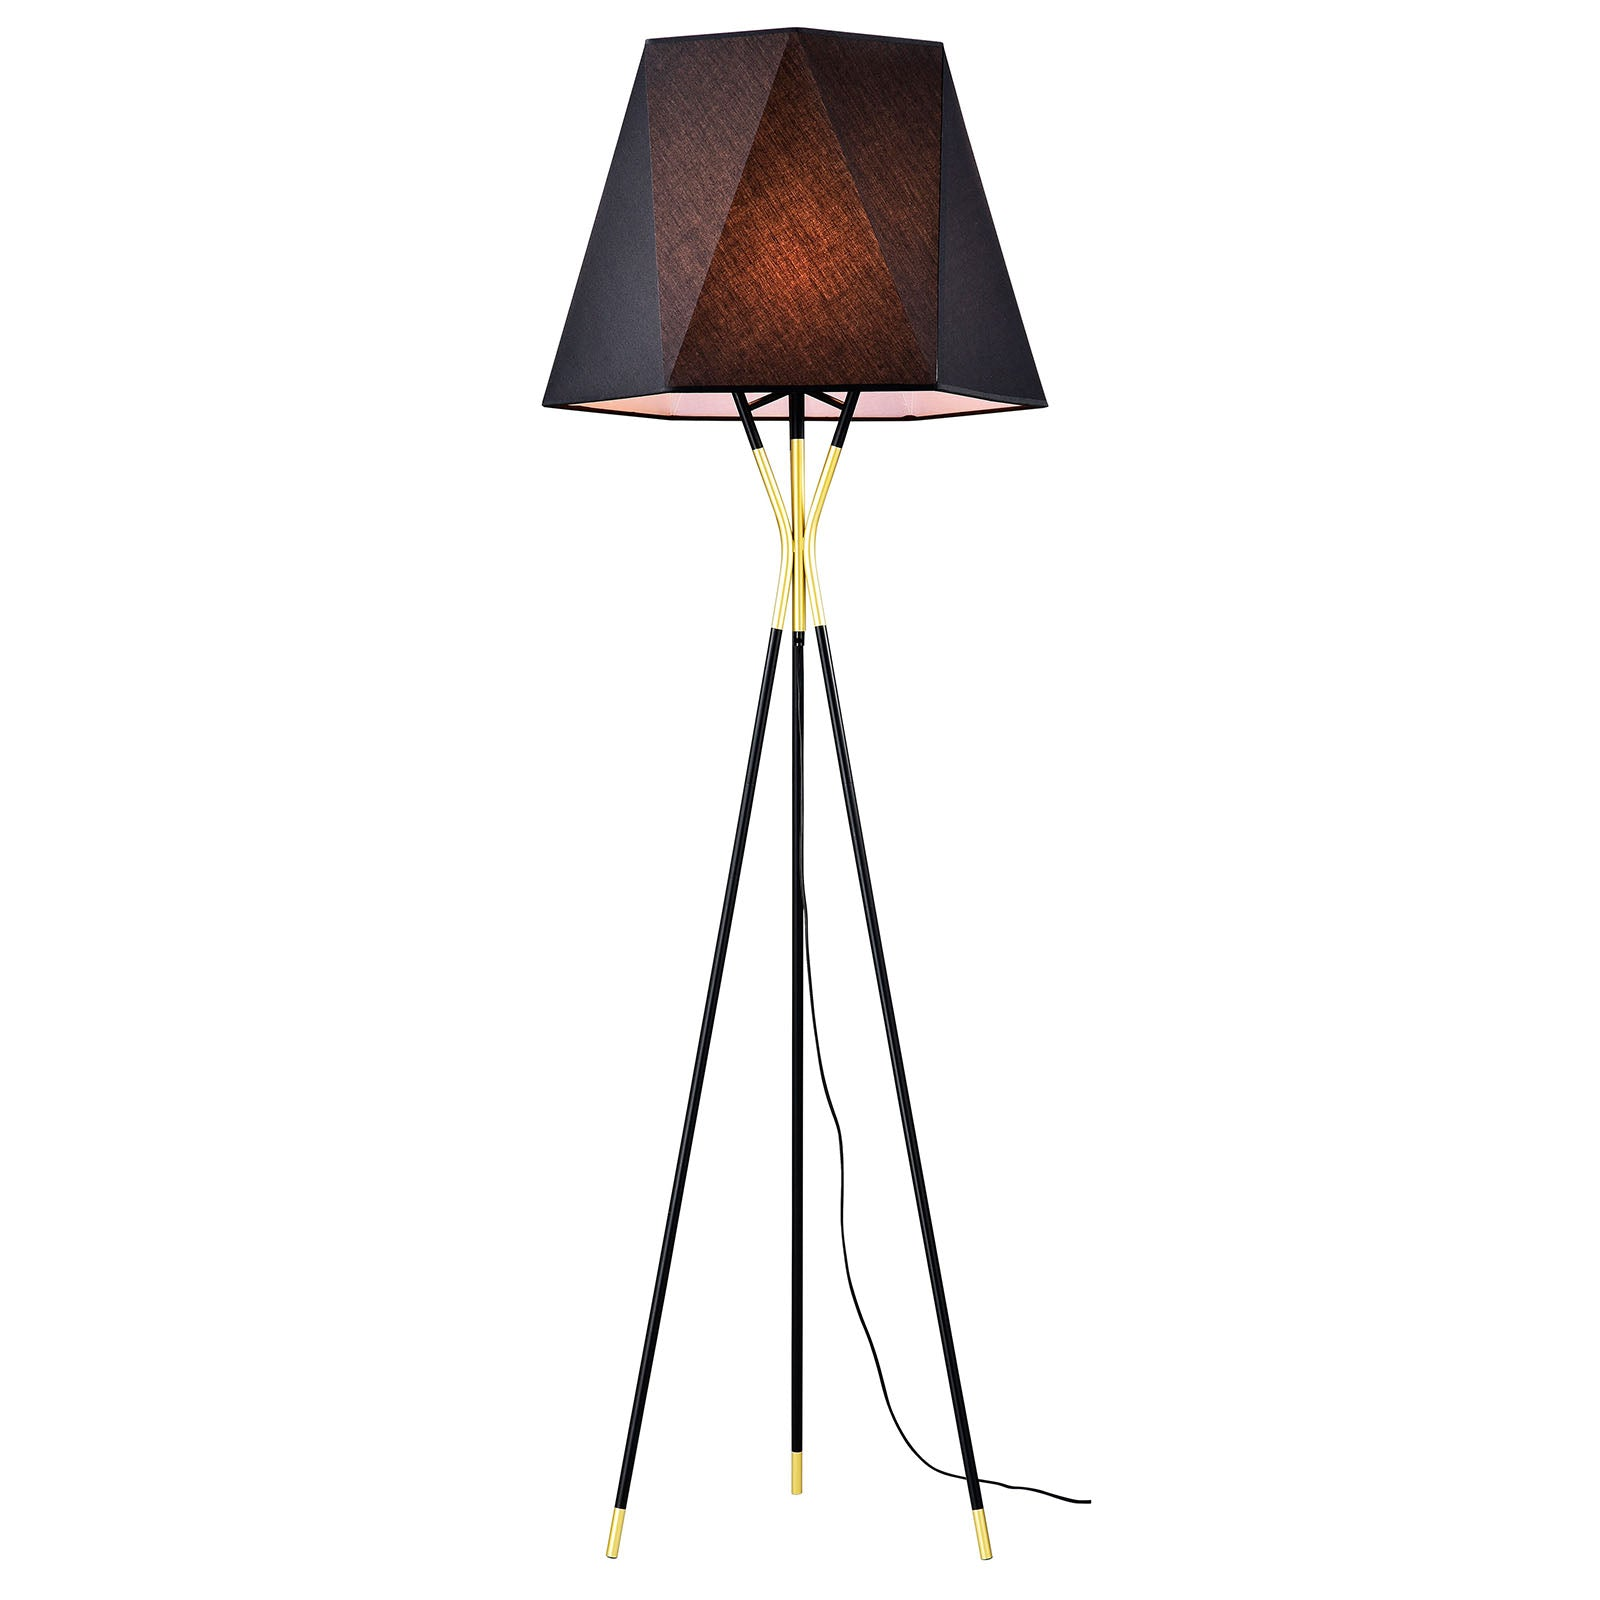 Retro Floor Lamp CL1190-CY-NEW-038